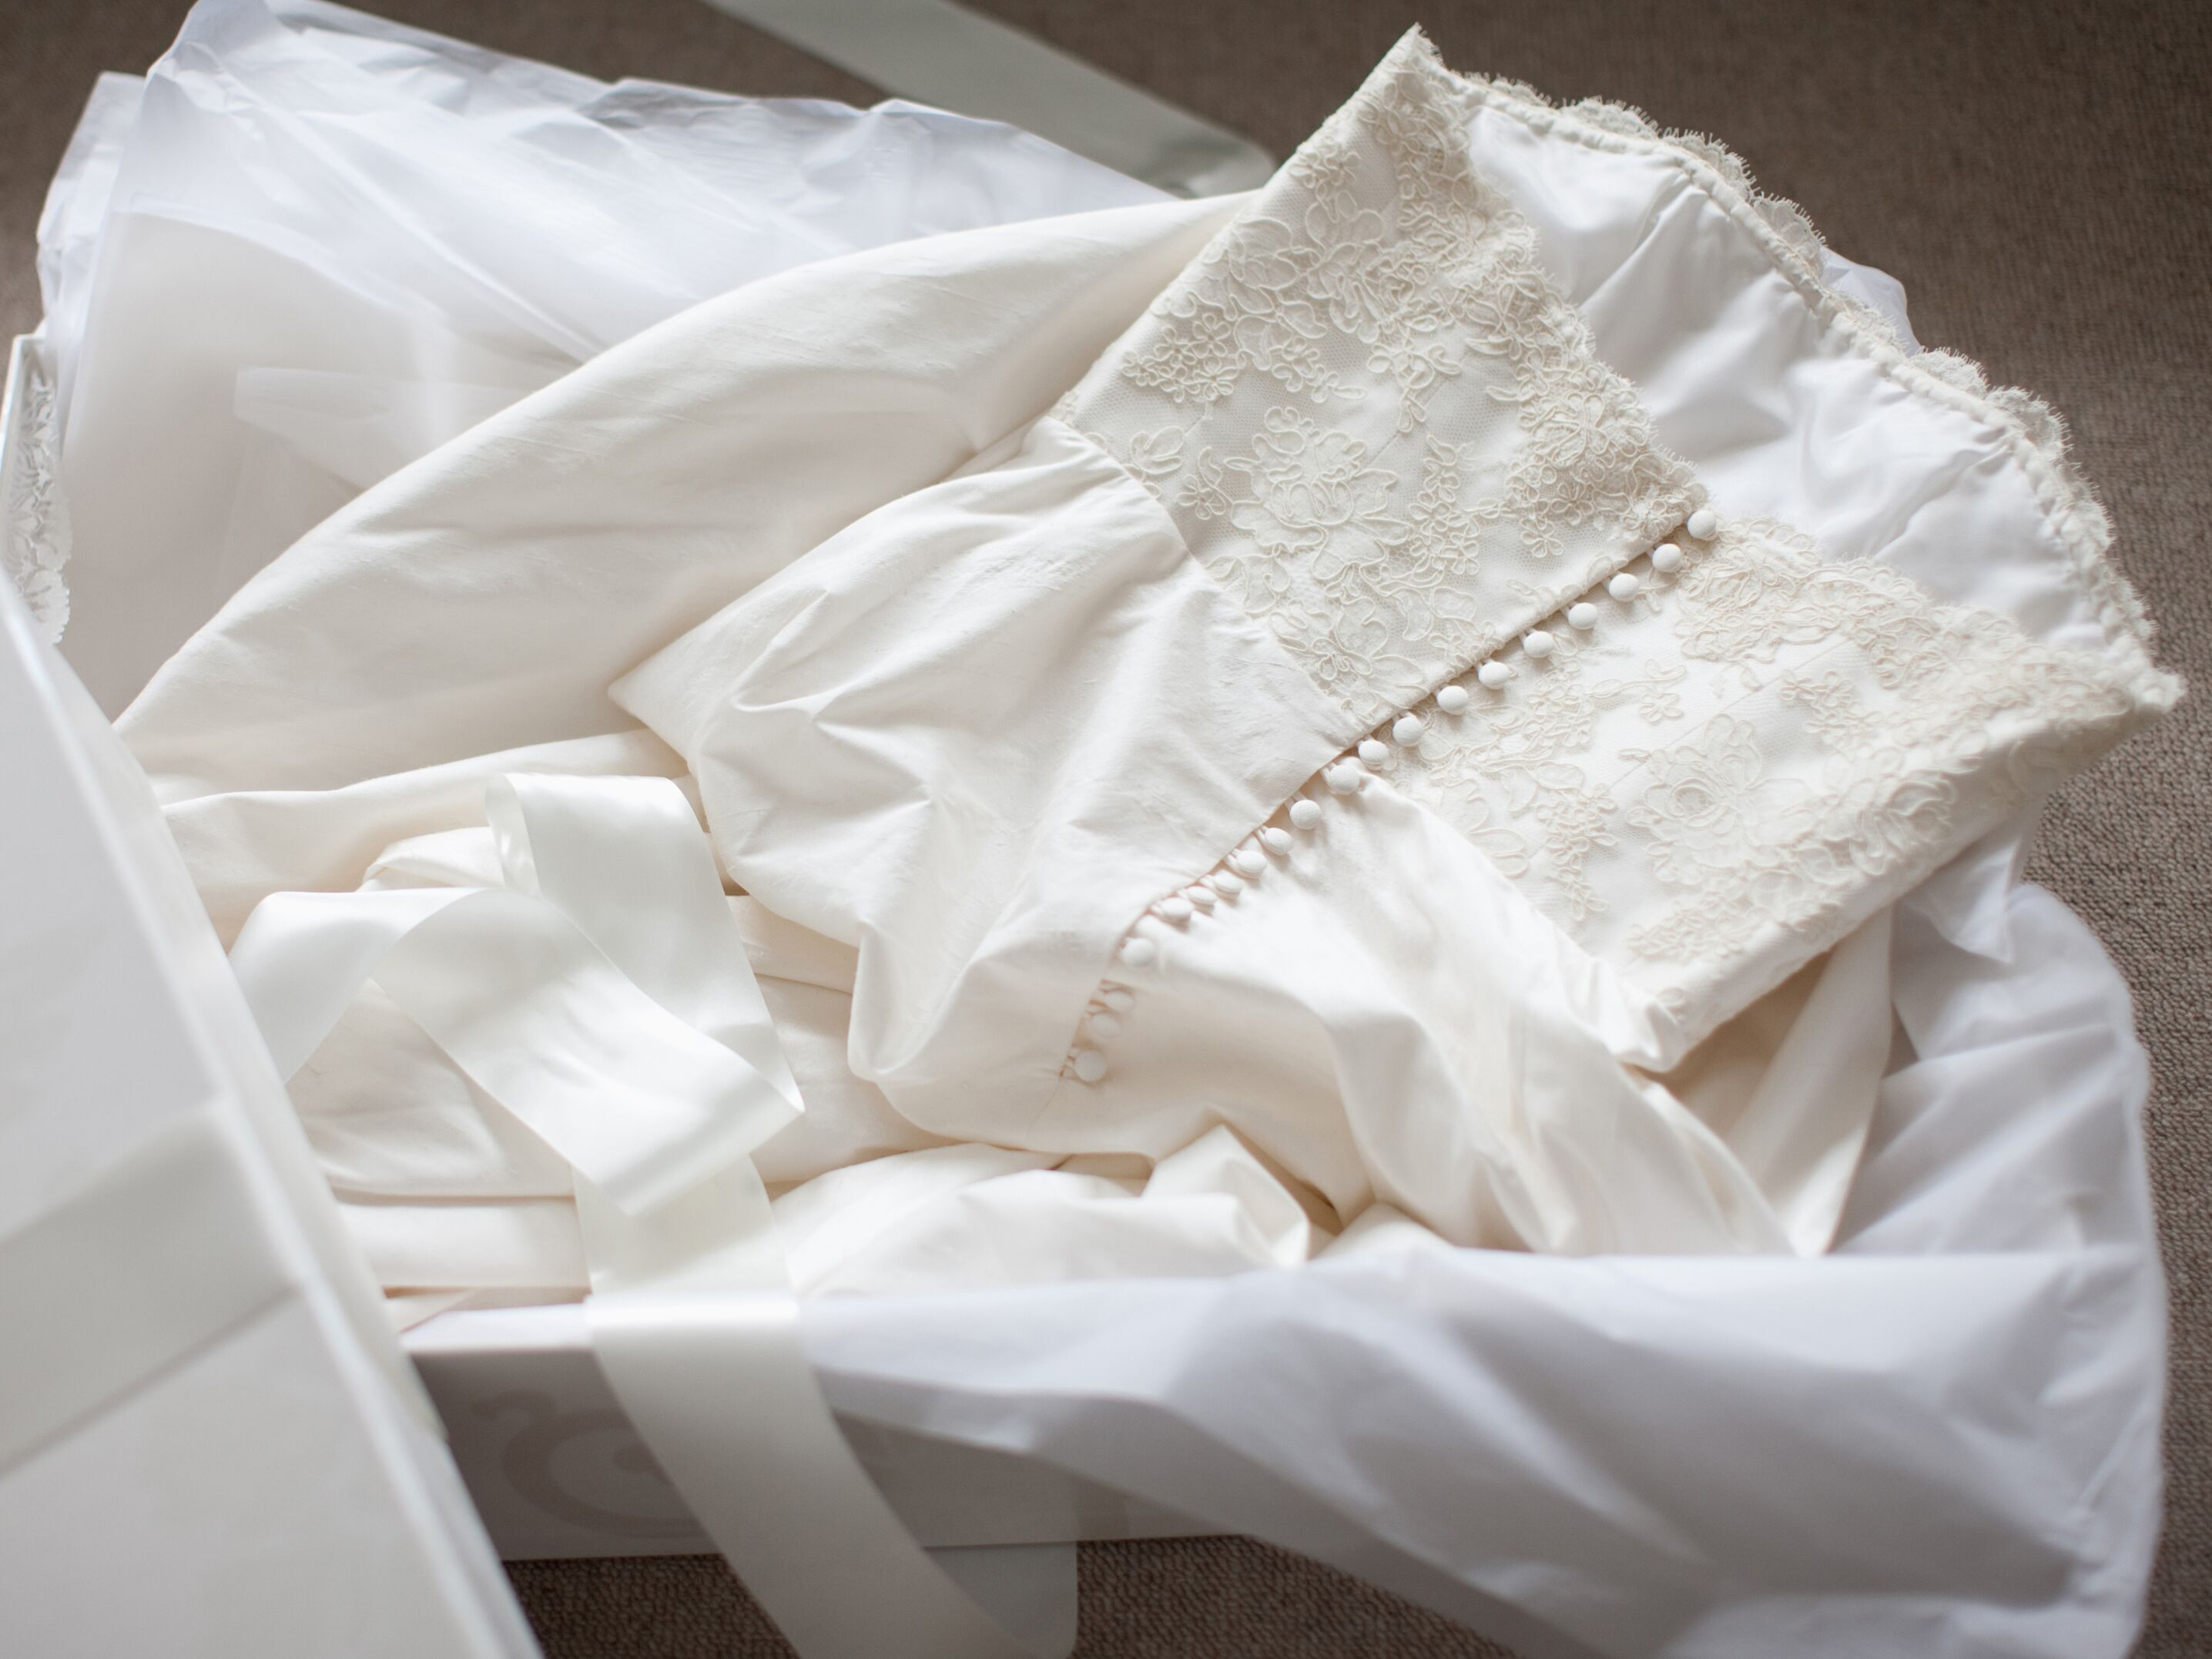 Used Wedding Dresses: Where to Buy & Sell a Preowned Wedding Dress